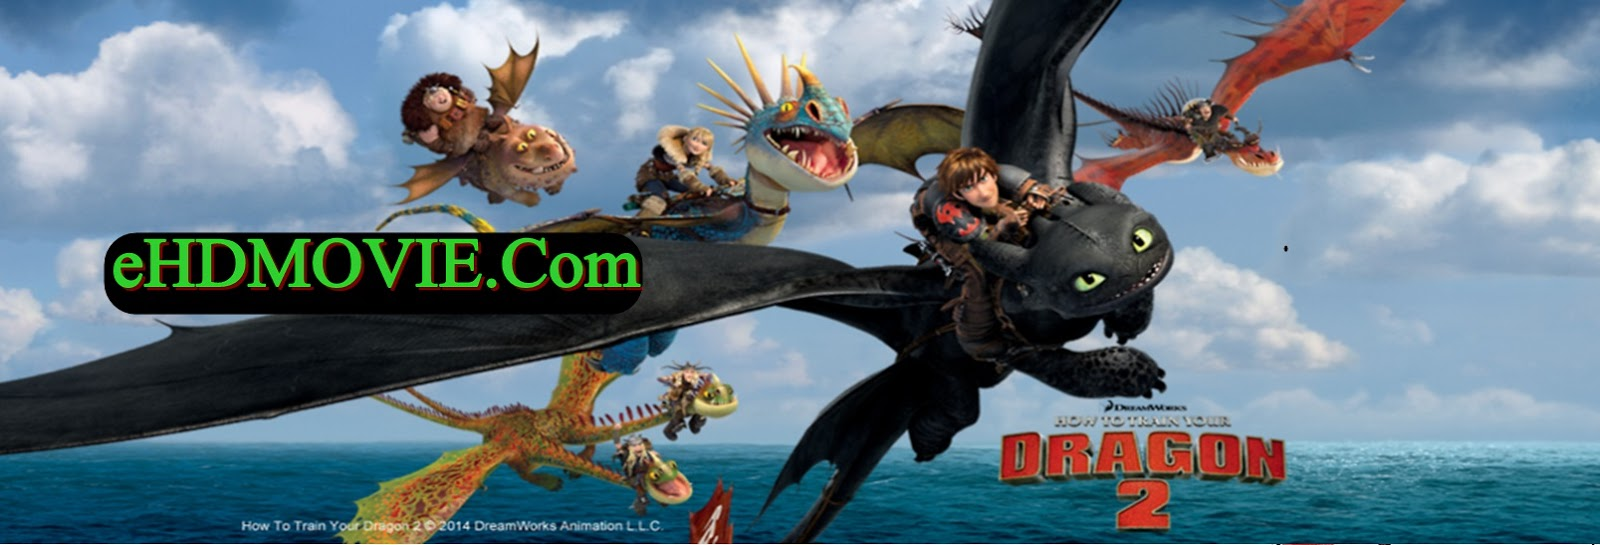 How To Train Your Dragon 2 2014 Full Movie Dual Audio [Hindi – English] 720p - HEVC - 480p ORG BRRip 350MB - 450MB - 950MB ESubs Free Download